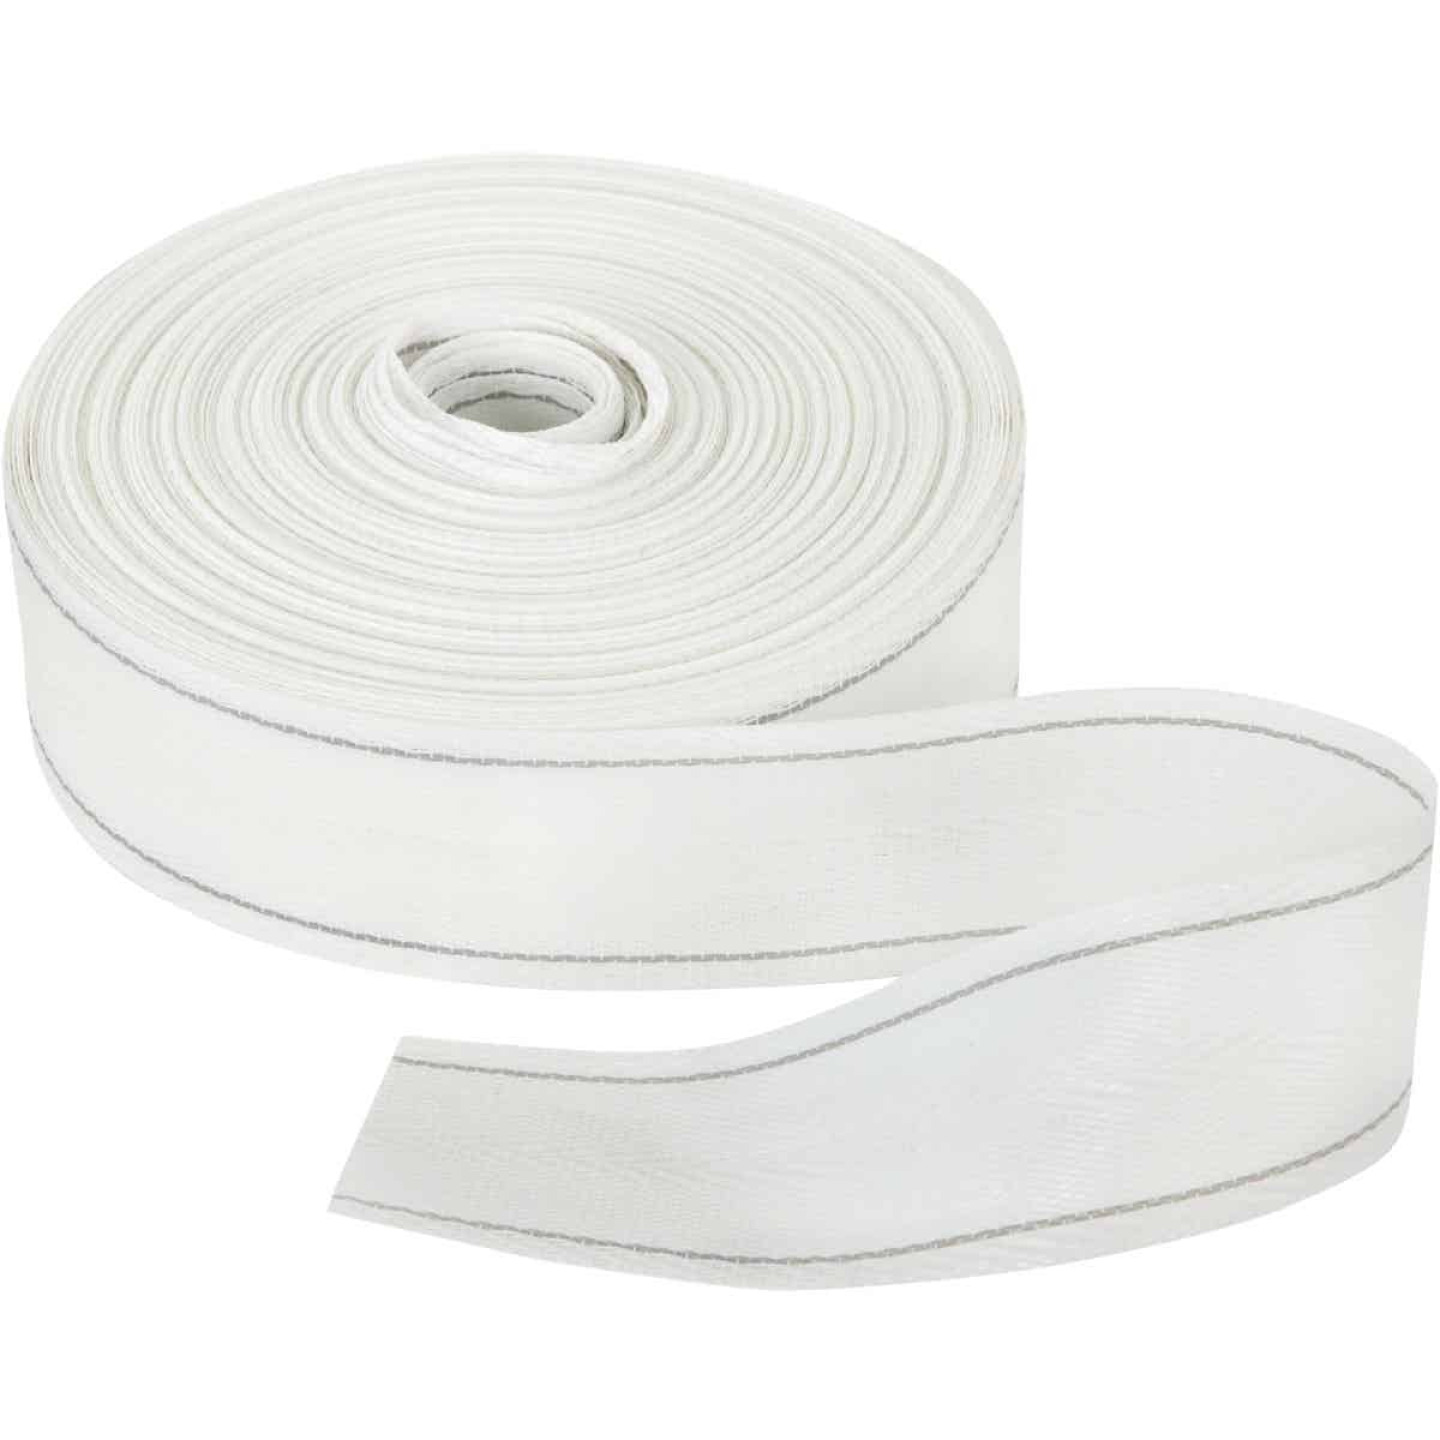 Frost King White 39 Ft. Outdoor Chair Webbing Image 2